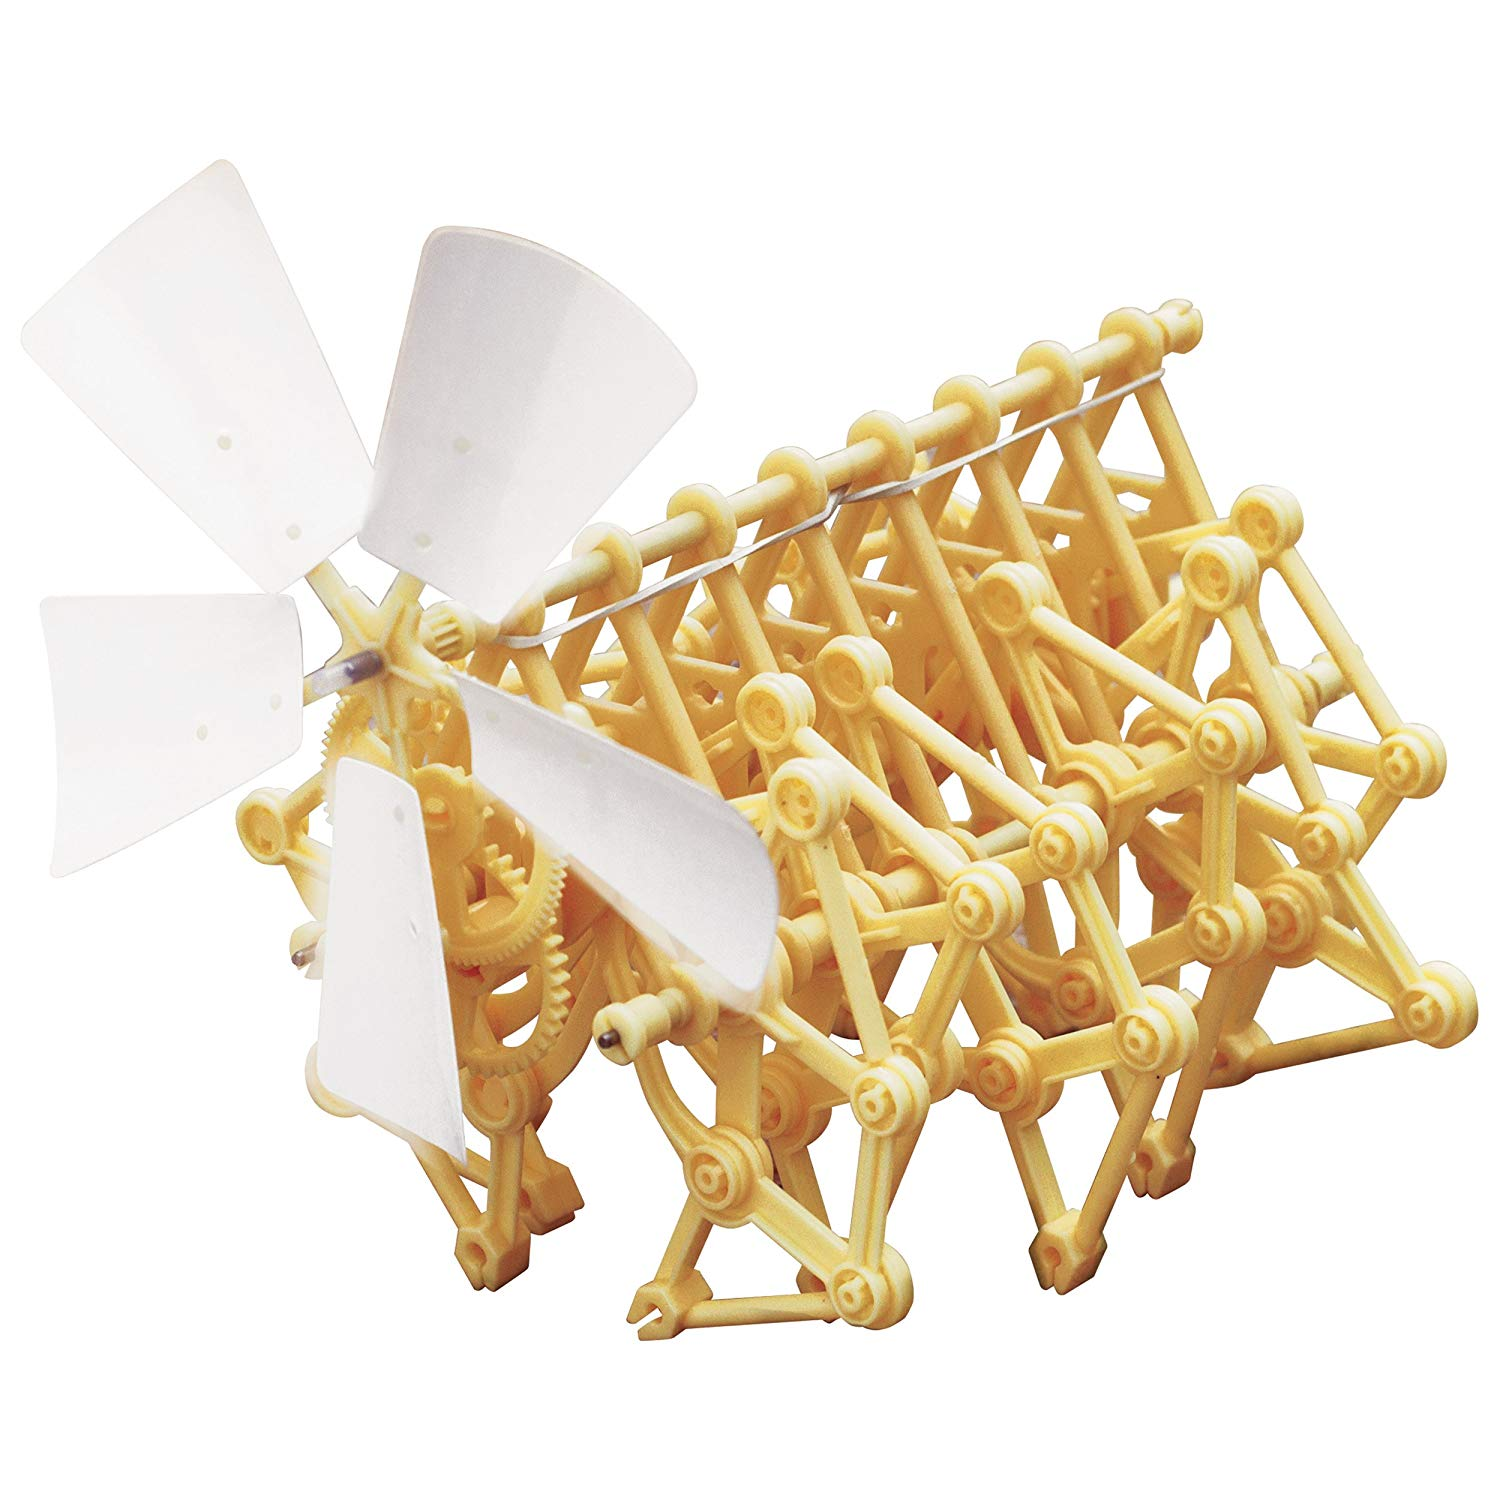 Strandbeest Model Kit by Elenco